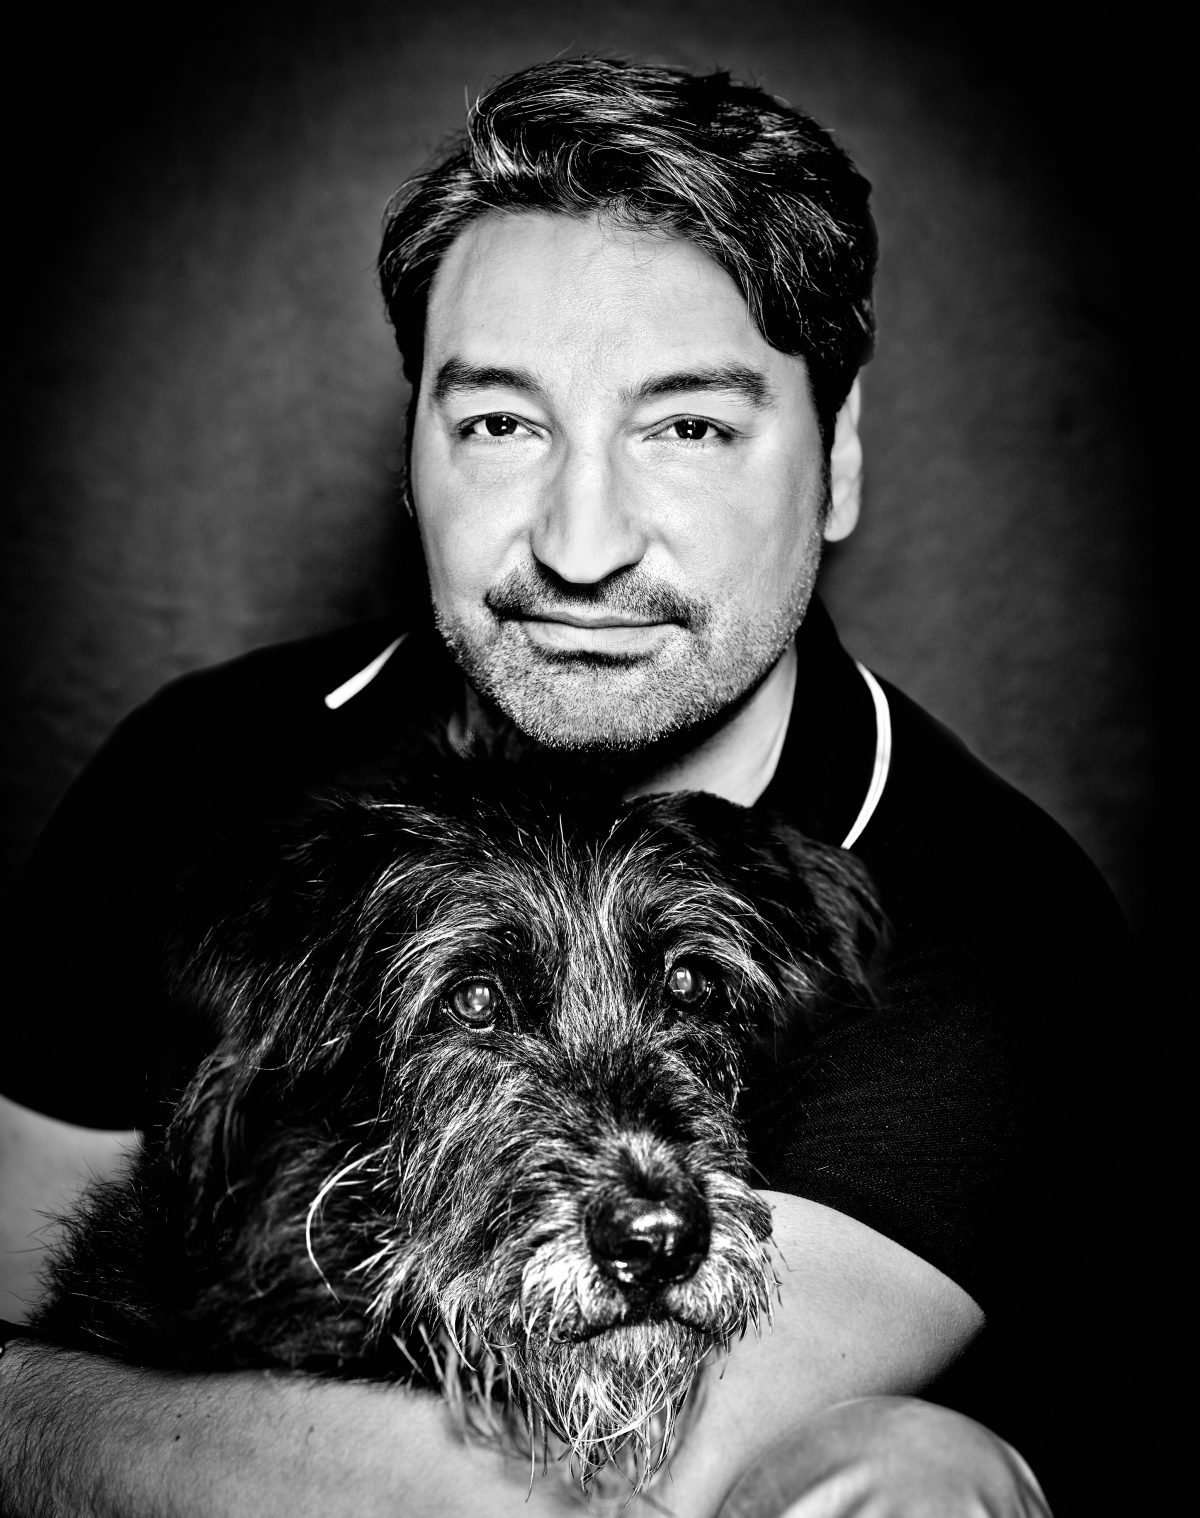 mousse-t-fuer-mein-charity-buch-prominent-mit-hund-www.ciaogianna.de